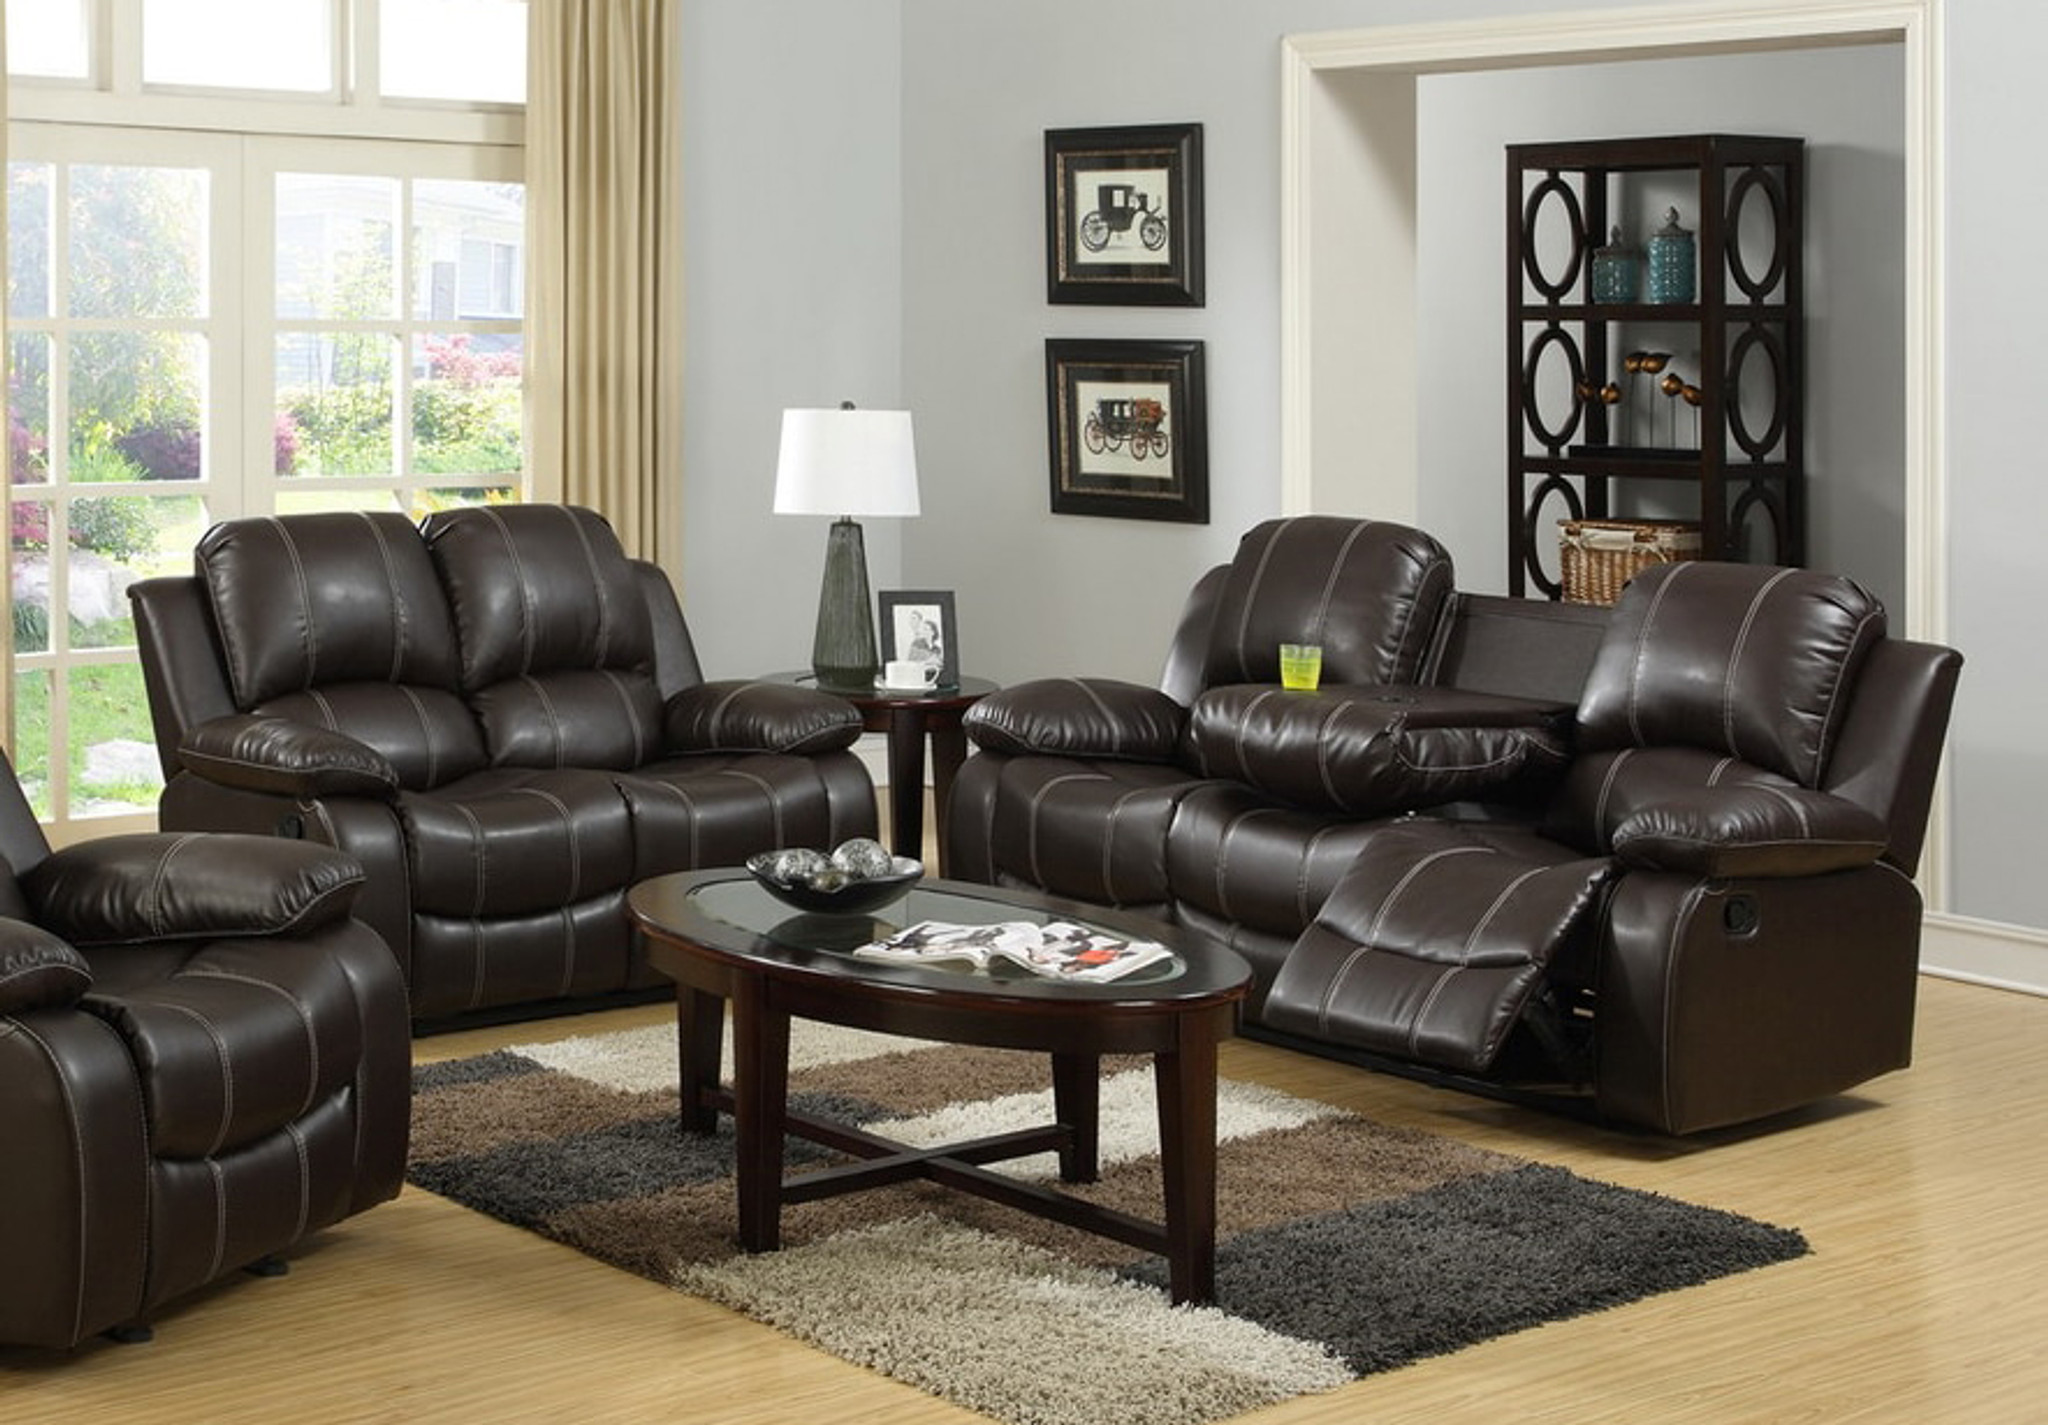 2pc Palermo Leather Recliner Sofa And Loveseat Espresso Kassa